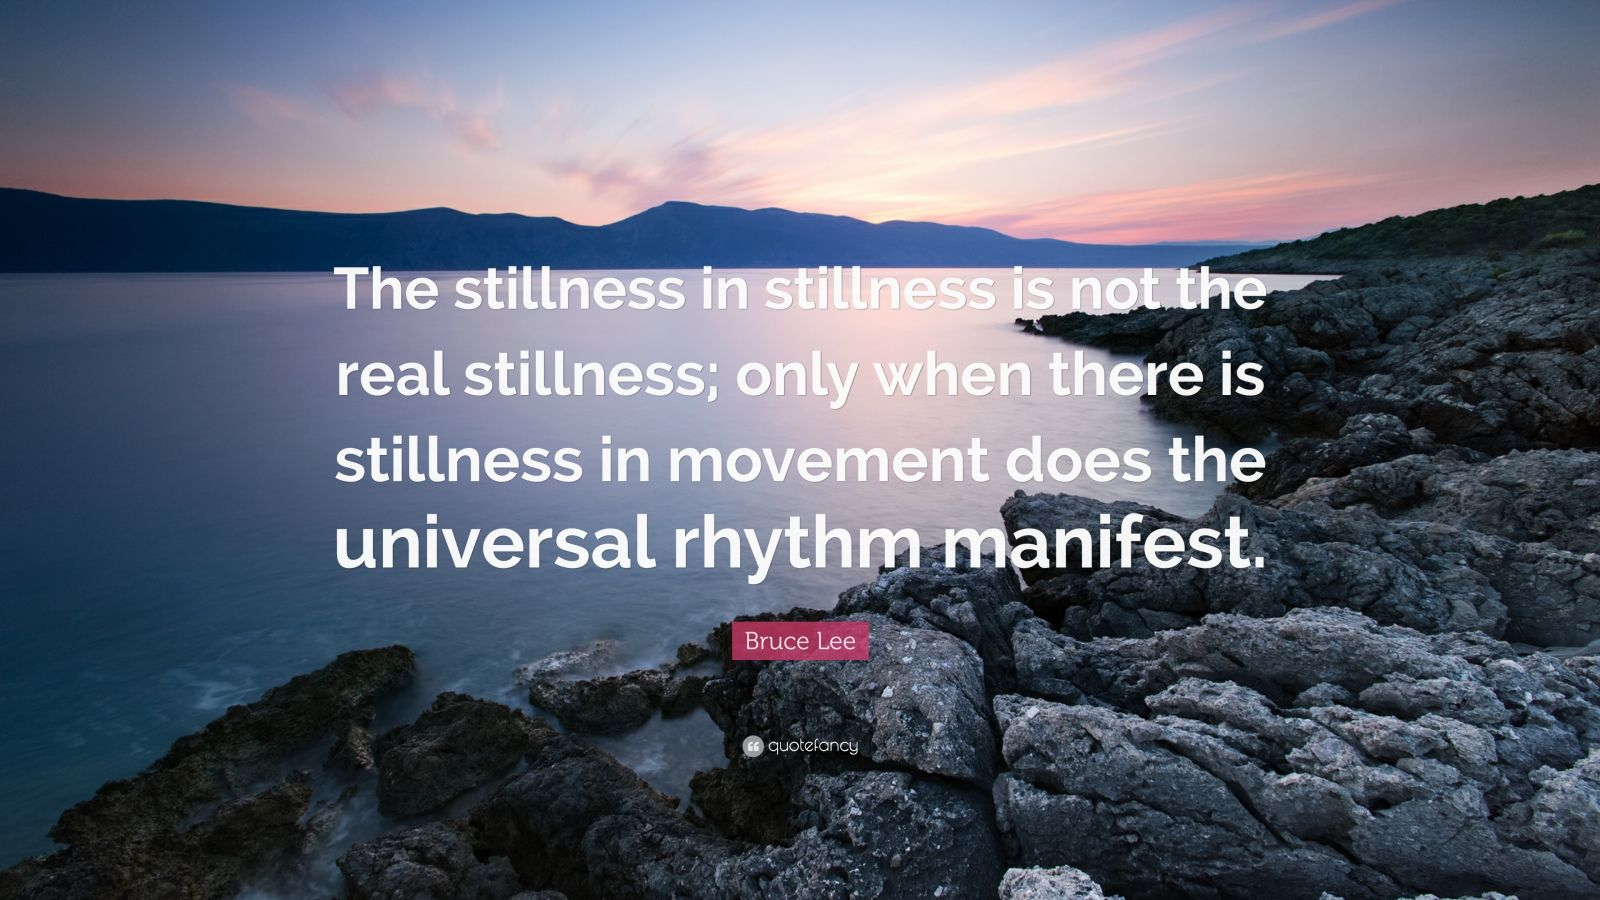 """Bruce Lee Quote: """"The stillness in stillness is not the real stillness; only when there is stillness in movement does the universal rhythm manifest."""""""